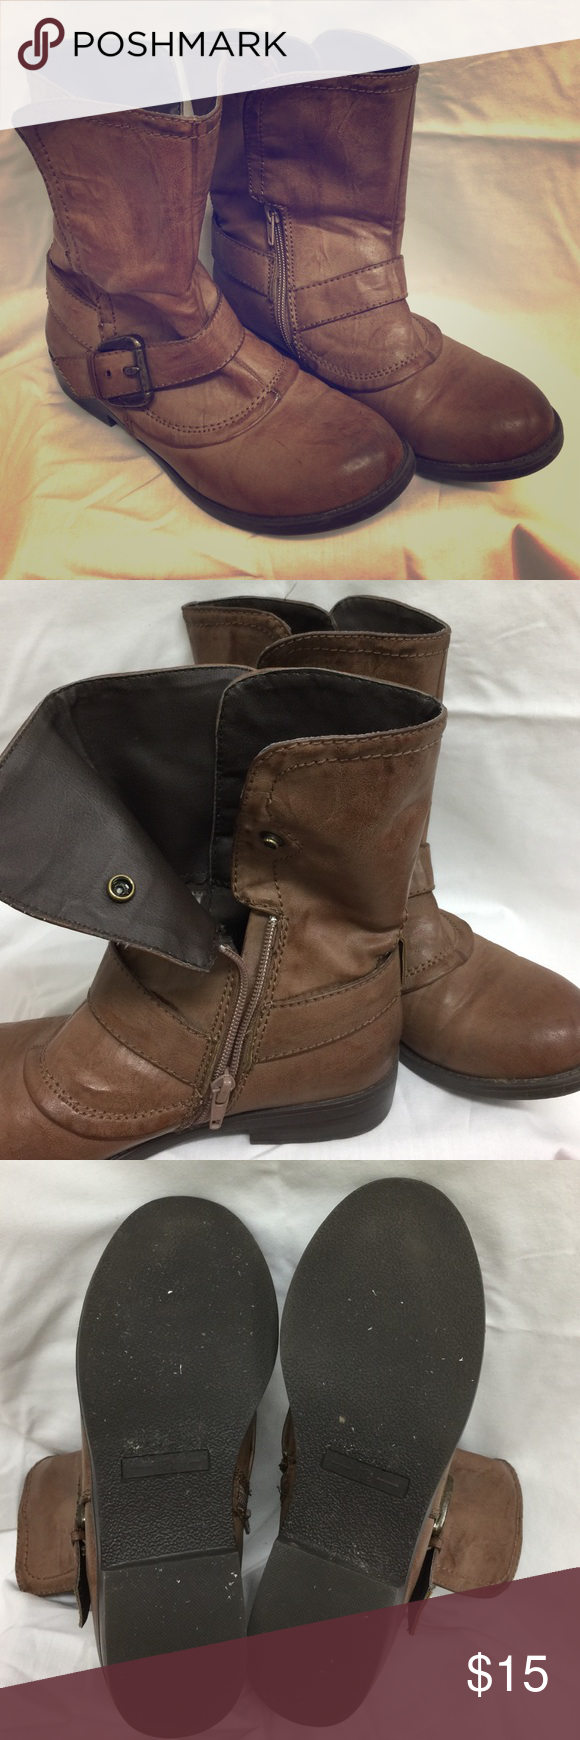 WMS 7 DAX R2 Brown Boots Brown ankle boots inside foot zippered and button, outside  button with over the  boot adjustable buckle. Barely worn for I have way too many shoes. Size 7, true to size. R2 Shoes Ankle Boots & Booties